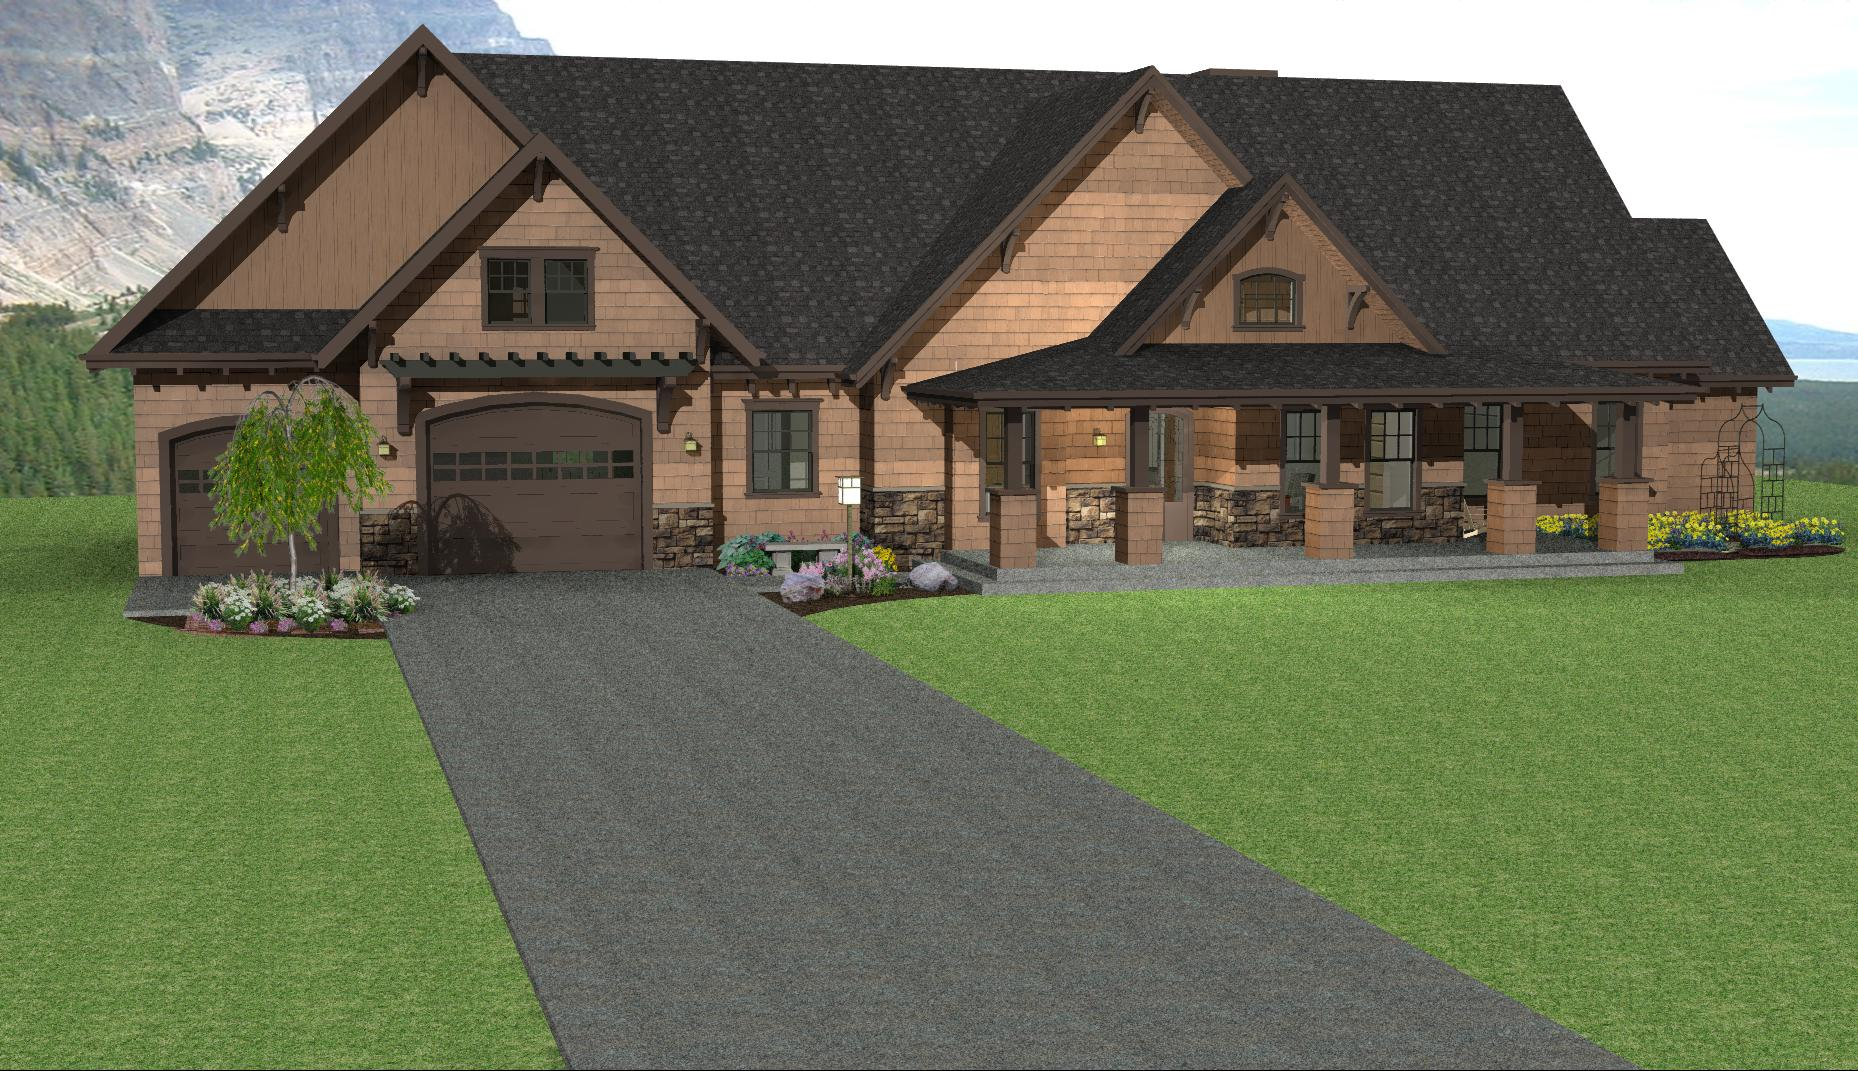 Ranch style home designs find house plans for Ranch house blueprints